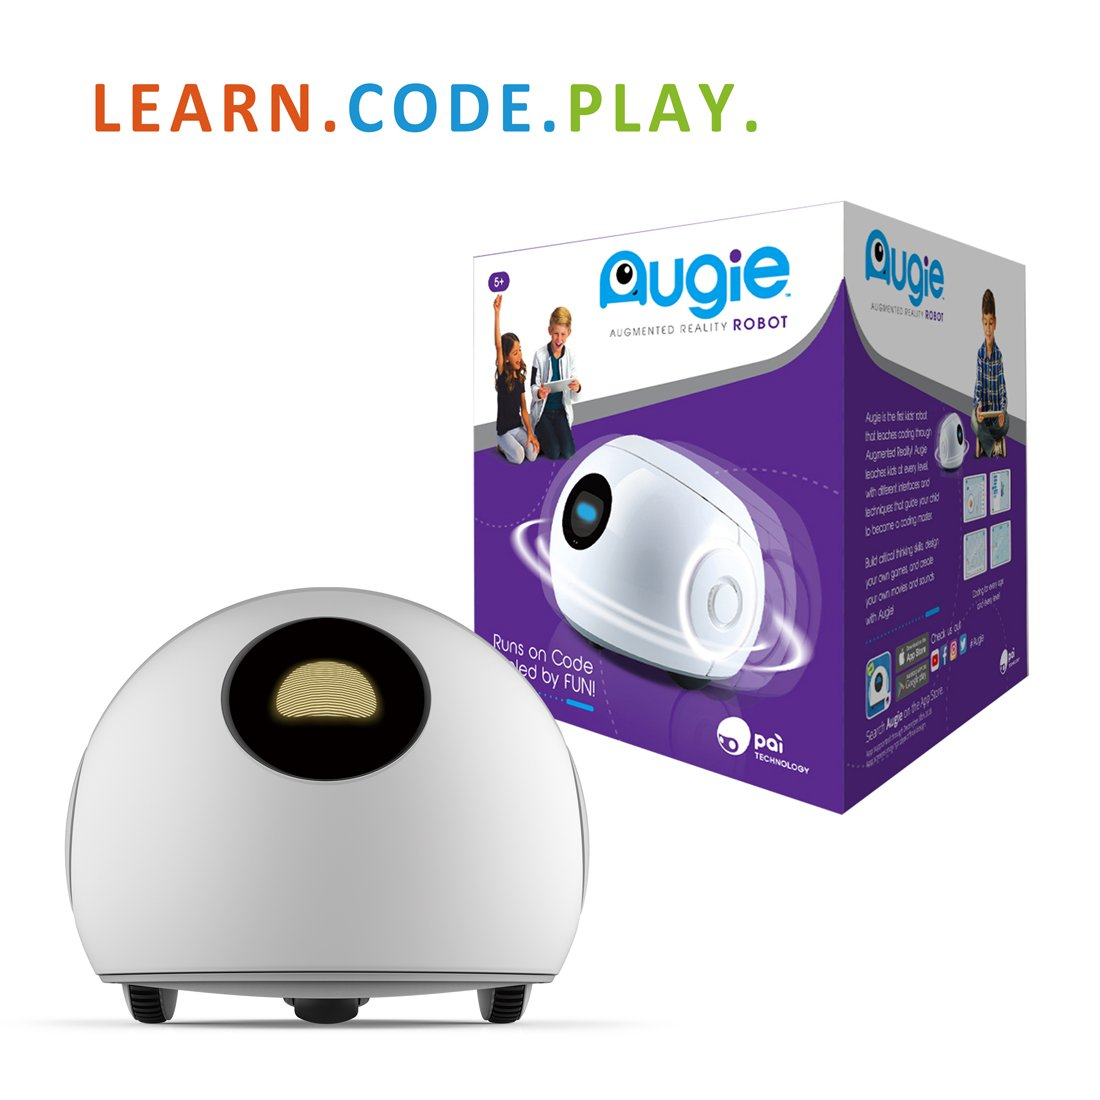 PAI TECHNOLOGY Augie The Coding Robot|Educational STEM Toy Robotic Adventure| Learn Coding & Programming / Augmented Reality Play by PAI TECHNOLOGY (Image #1)